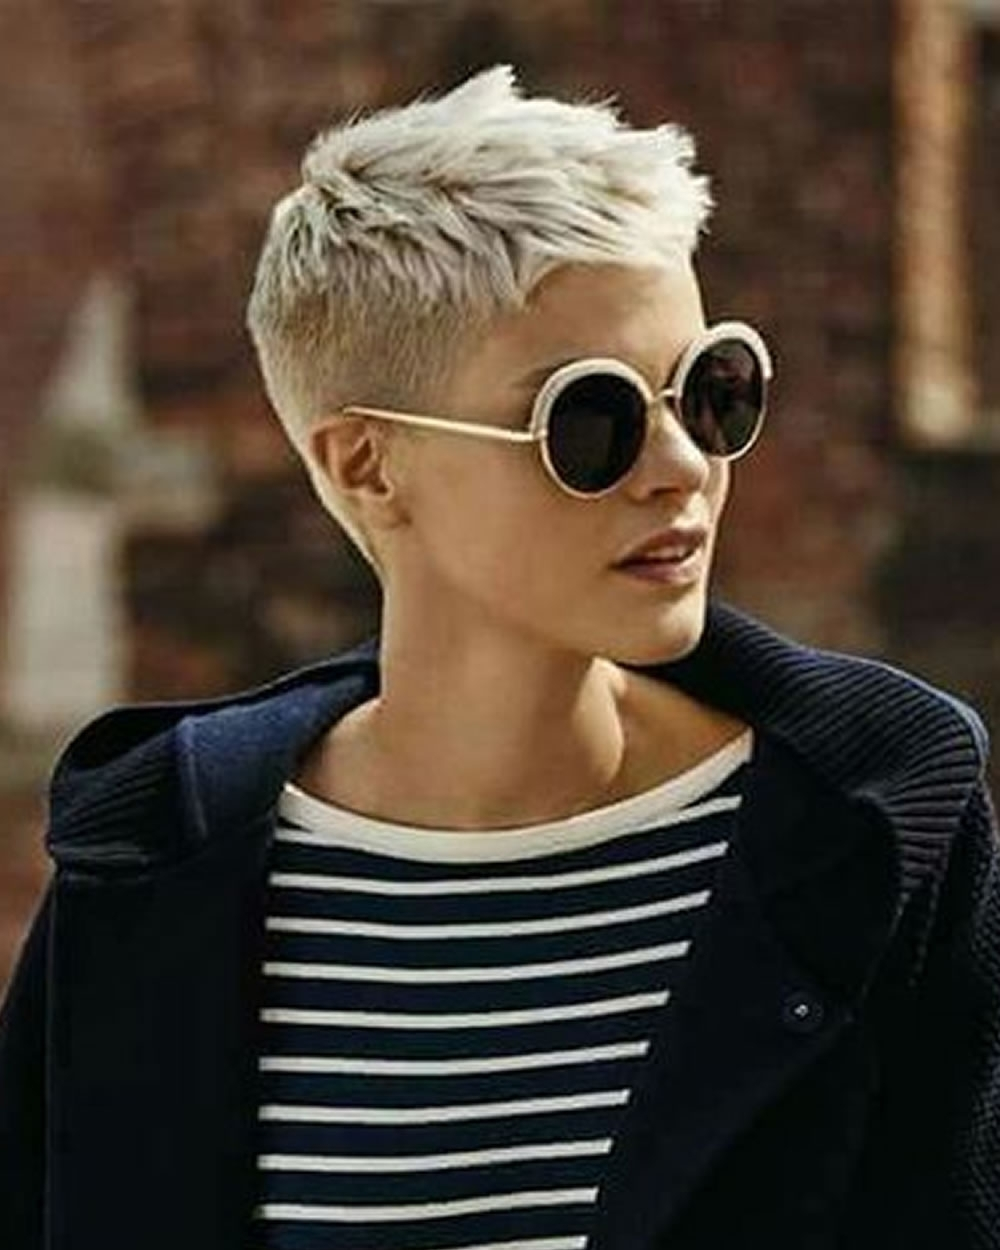 Super Very Short Pixie Haircuts & Hair Colors For 2018 2019 With Most Recent Pixie Hairstyles With Glasses (View 14 of 15)